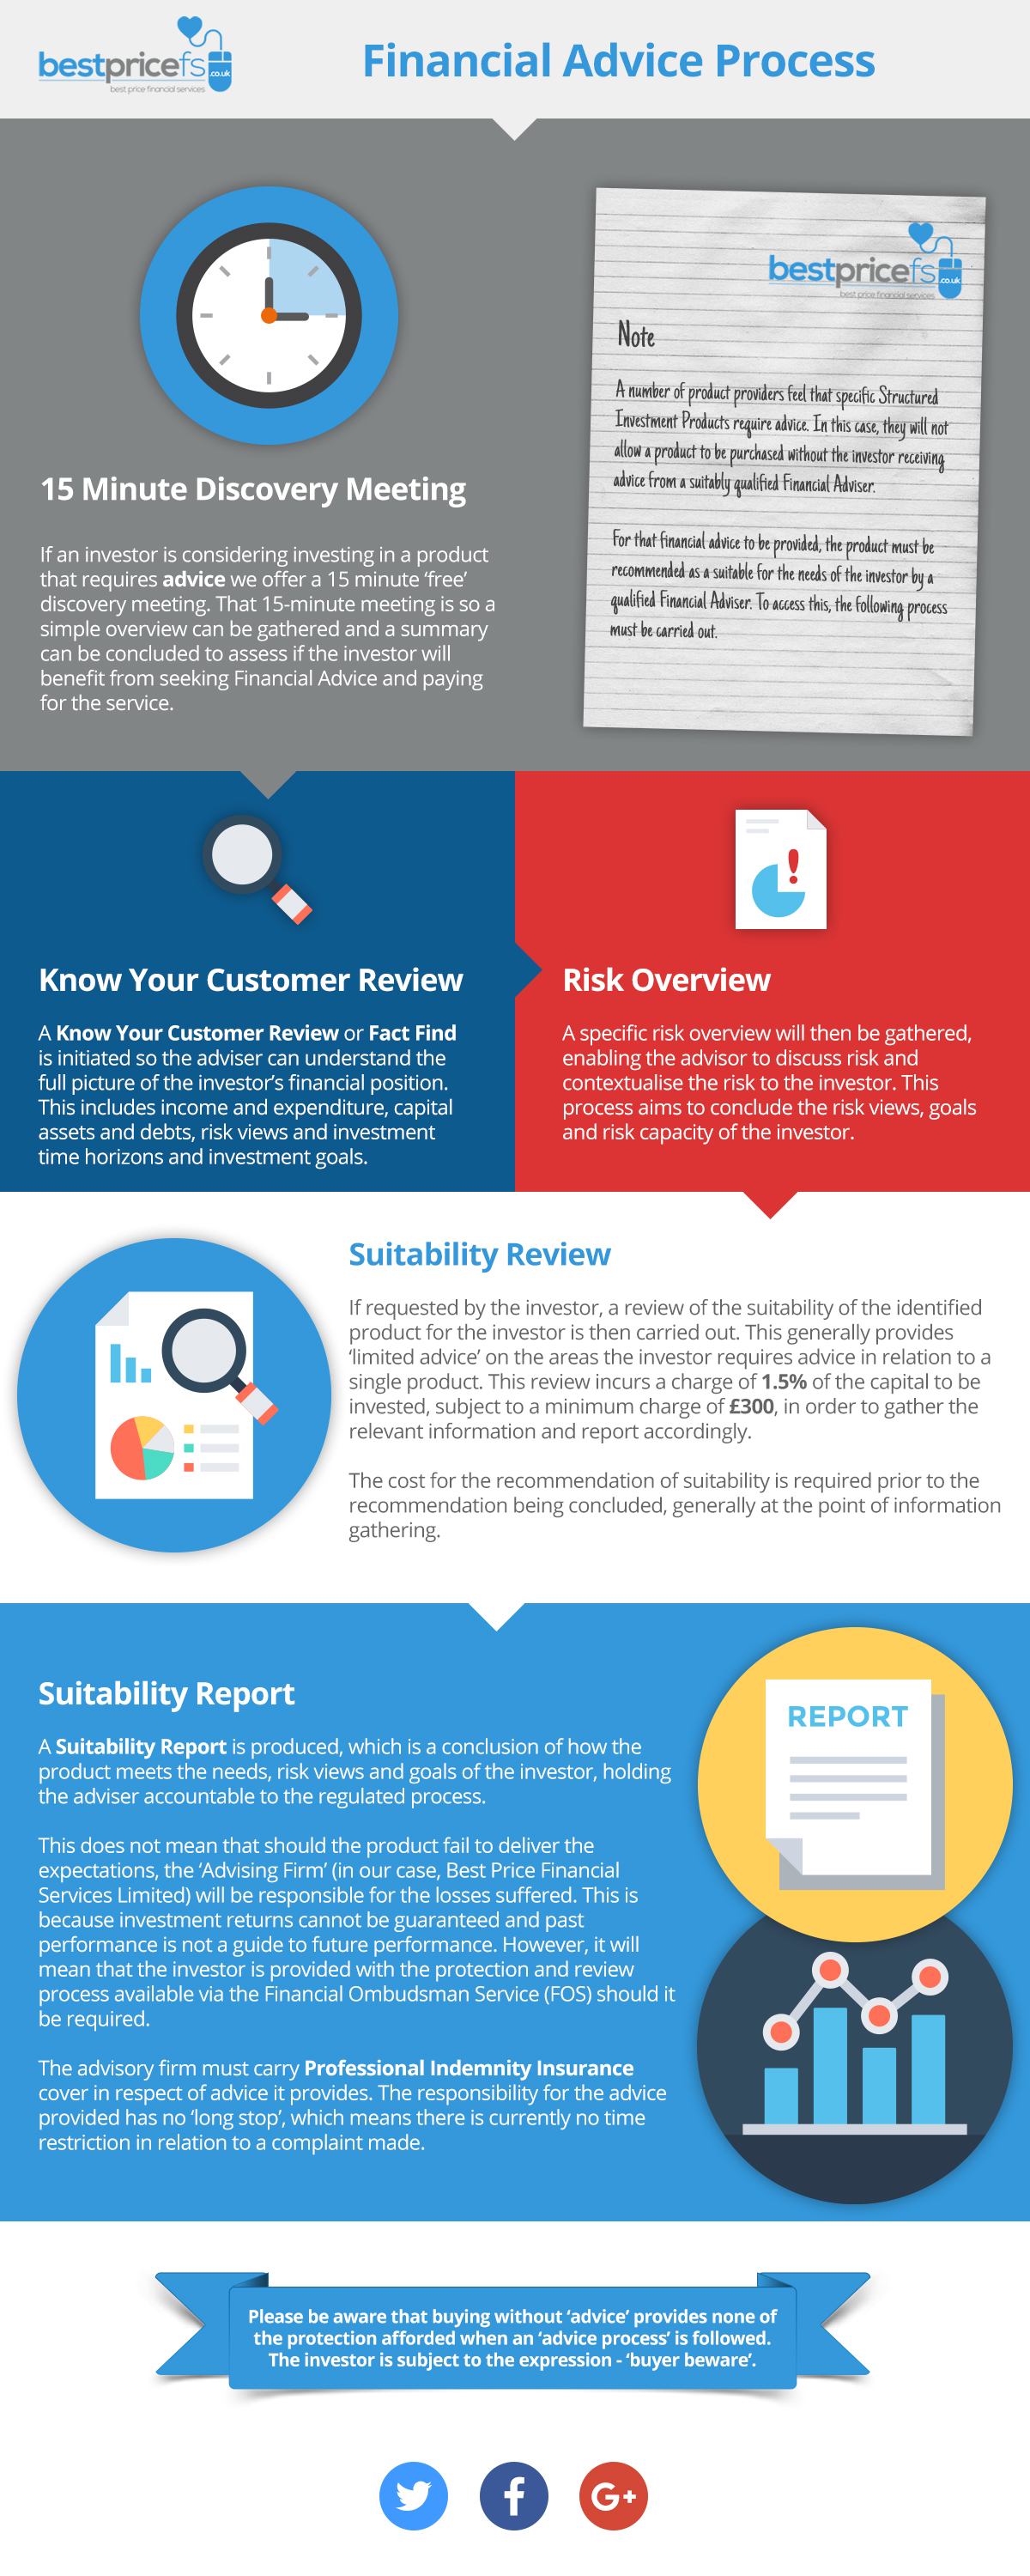 Financial Advice Process Infographic